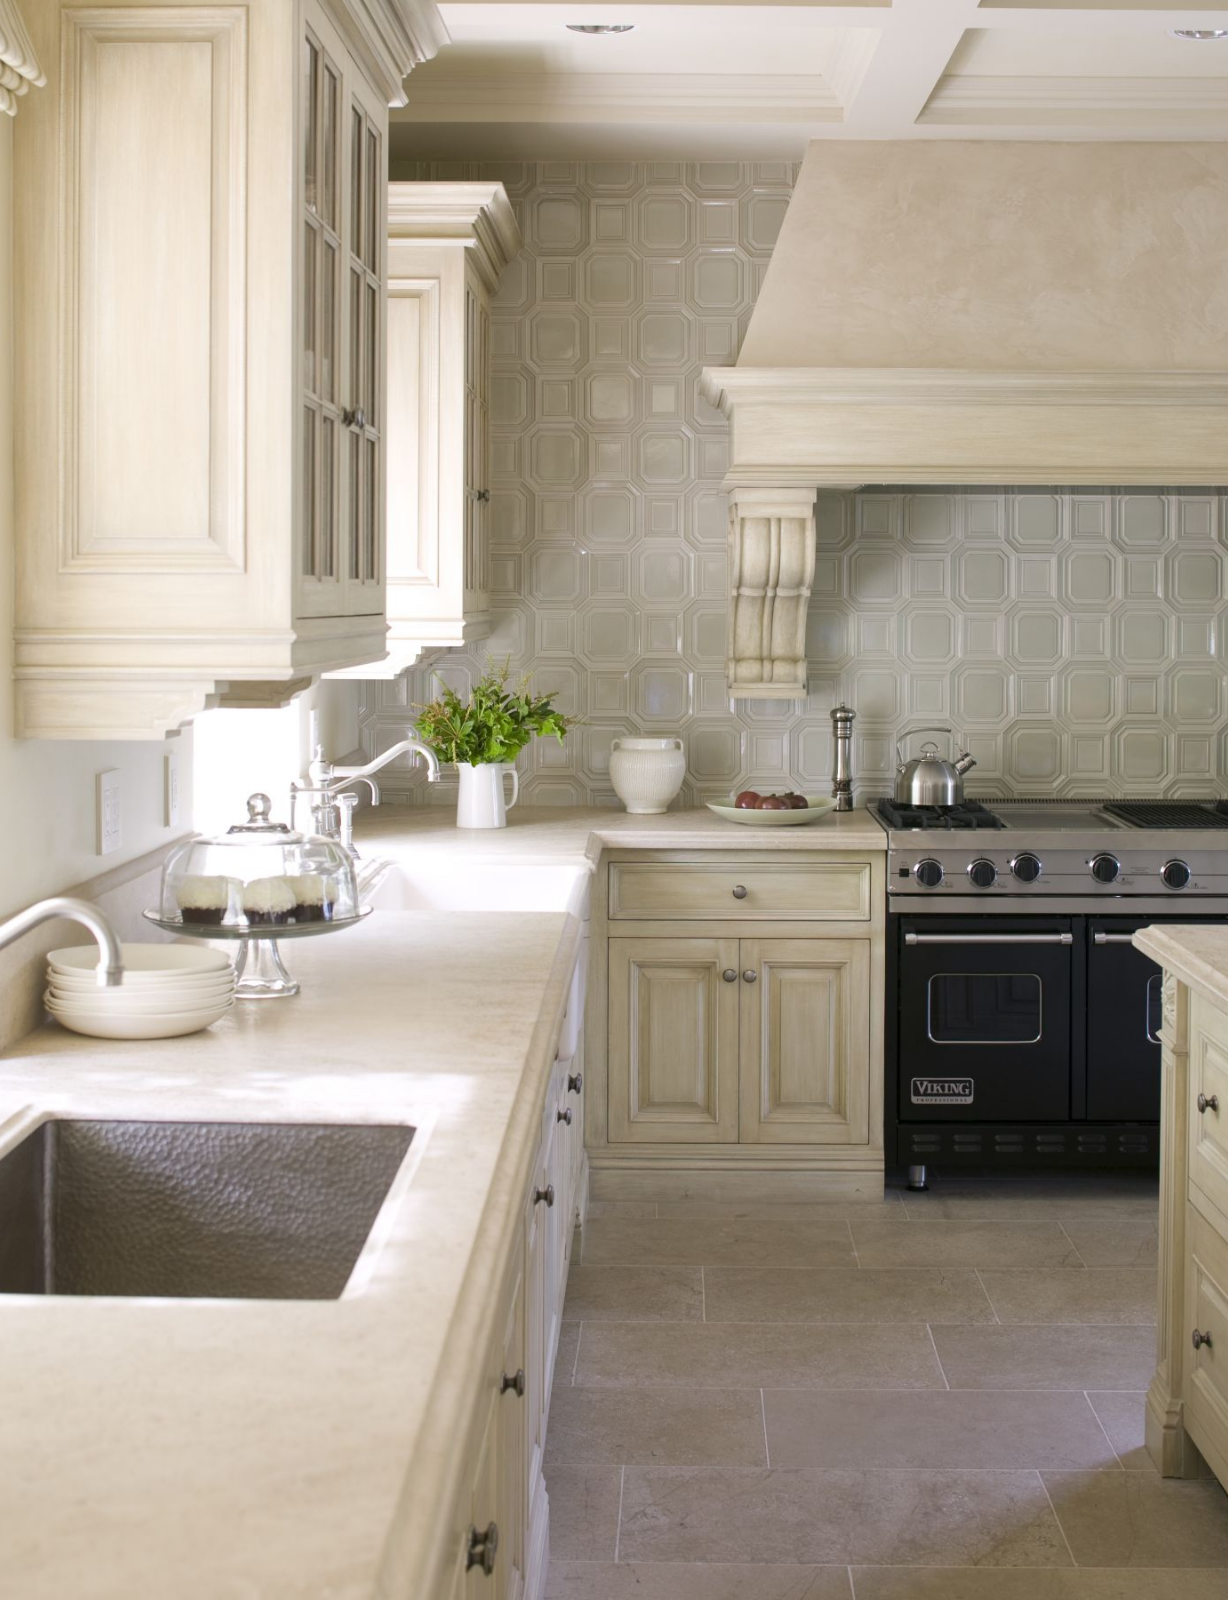 You had us at ceramic tile backsplash by Walker Zanger